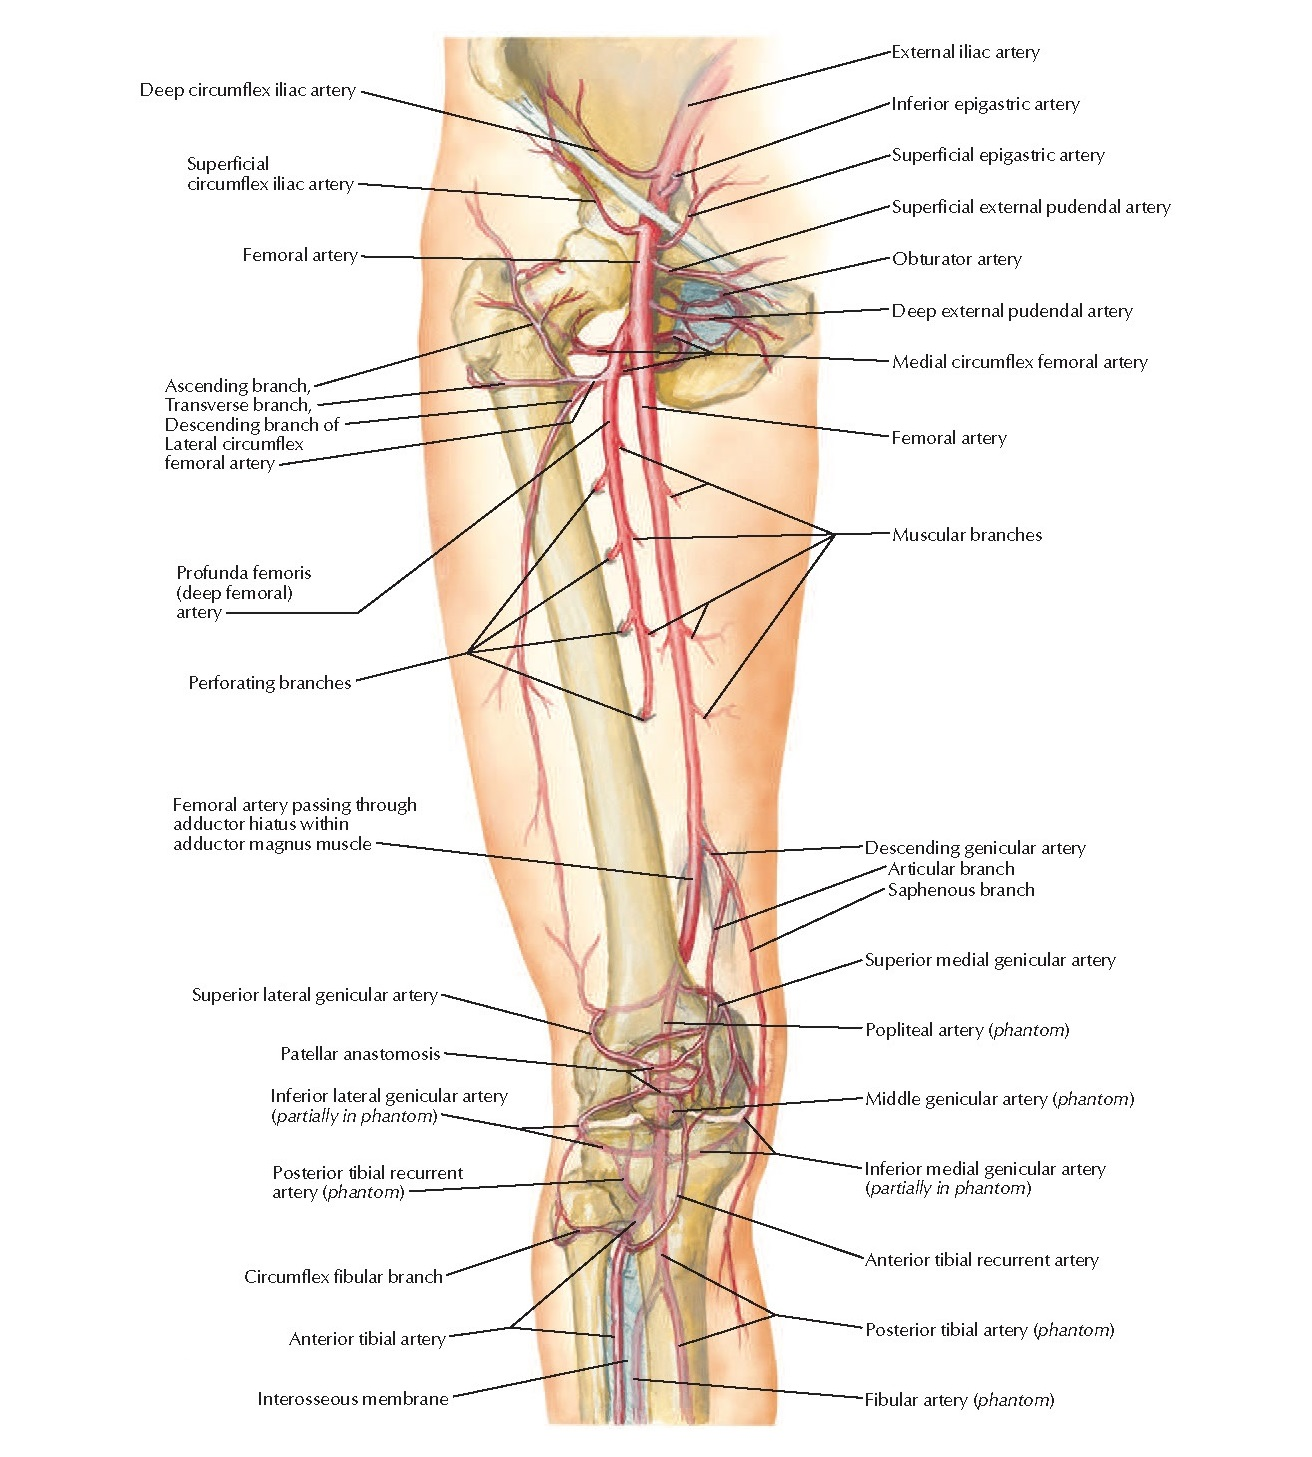 Arteries of Thigh and Knee Anatomy